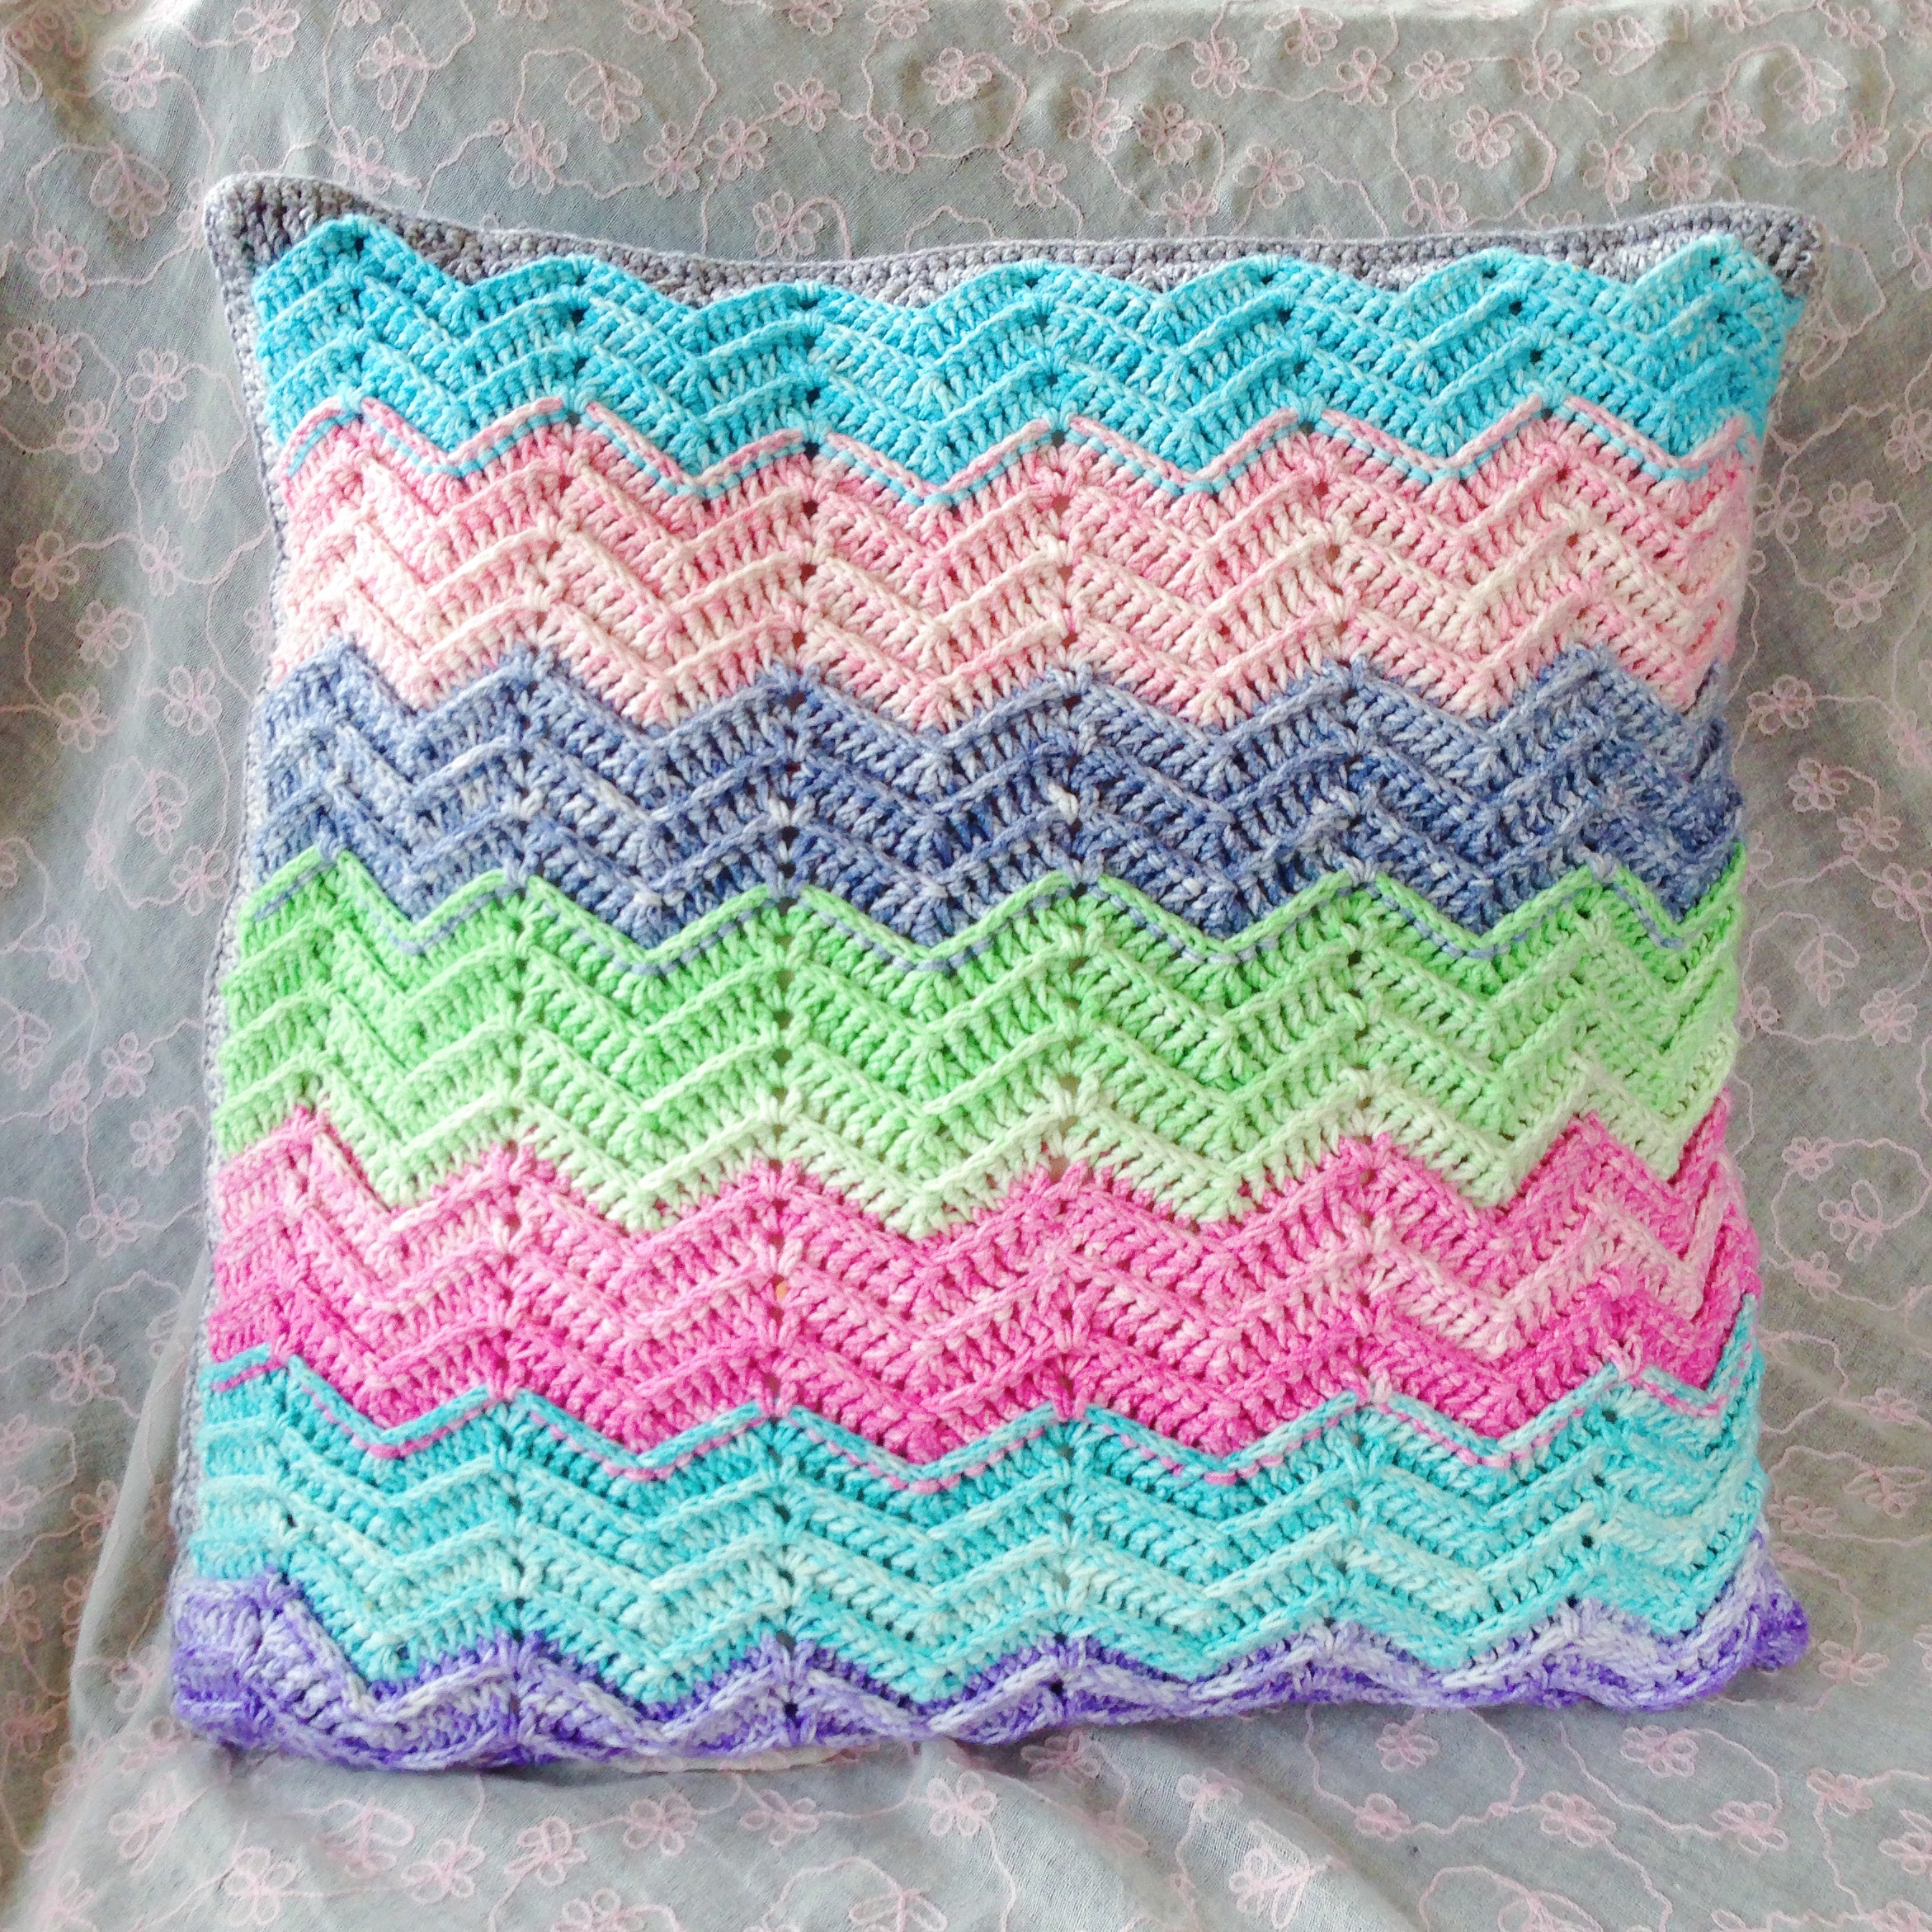 Chevron Cushion in Scheepjes Aquarel, design by MissNeriss. Yarn available from Wool Warehouse: Scheepjes Softfun Aquarel, available from Wool Warehouse: http://shrsl.com/?dhnl